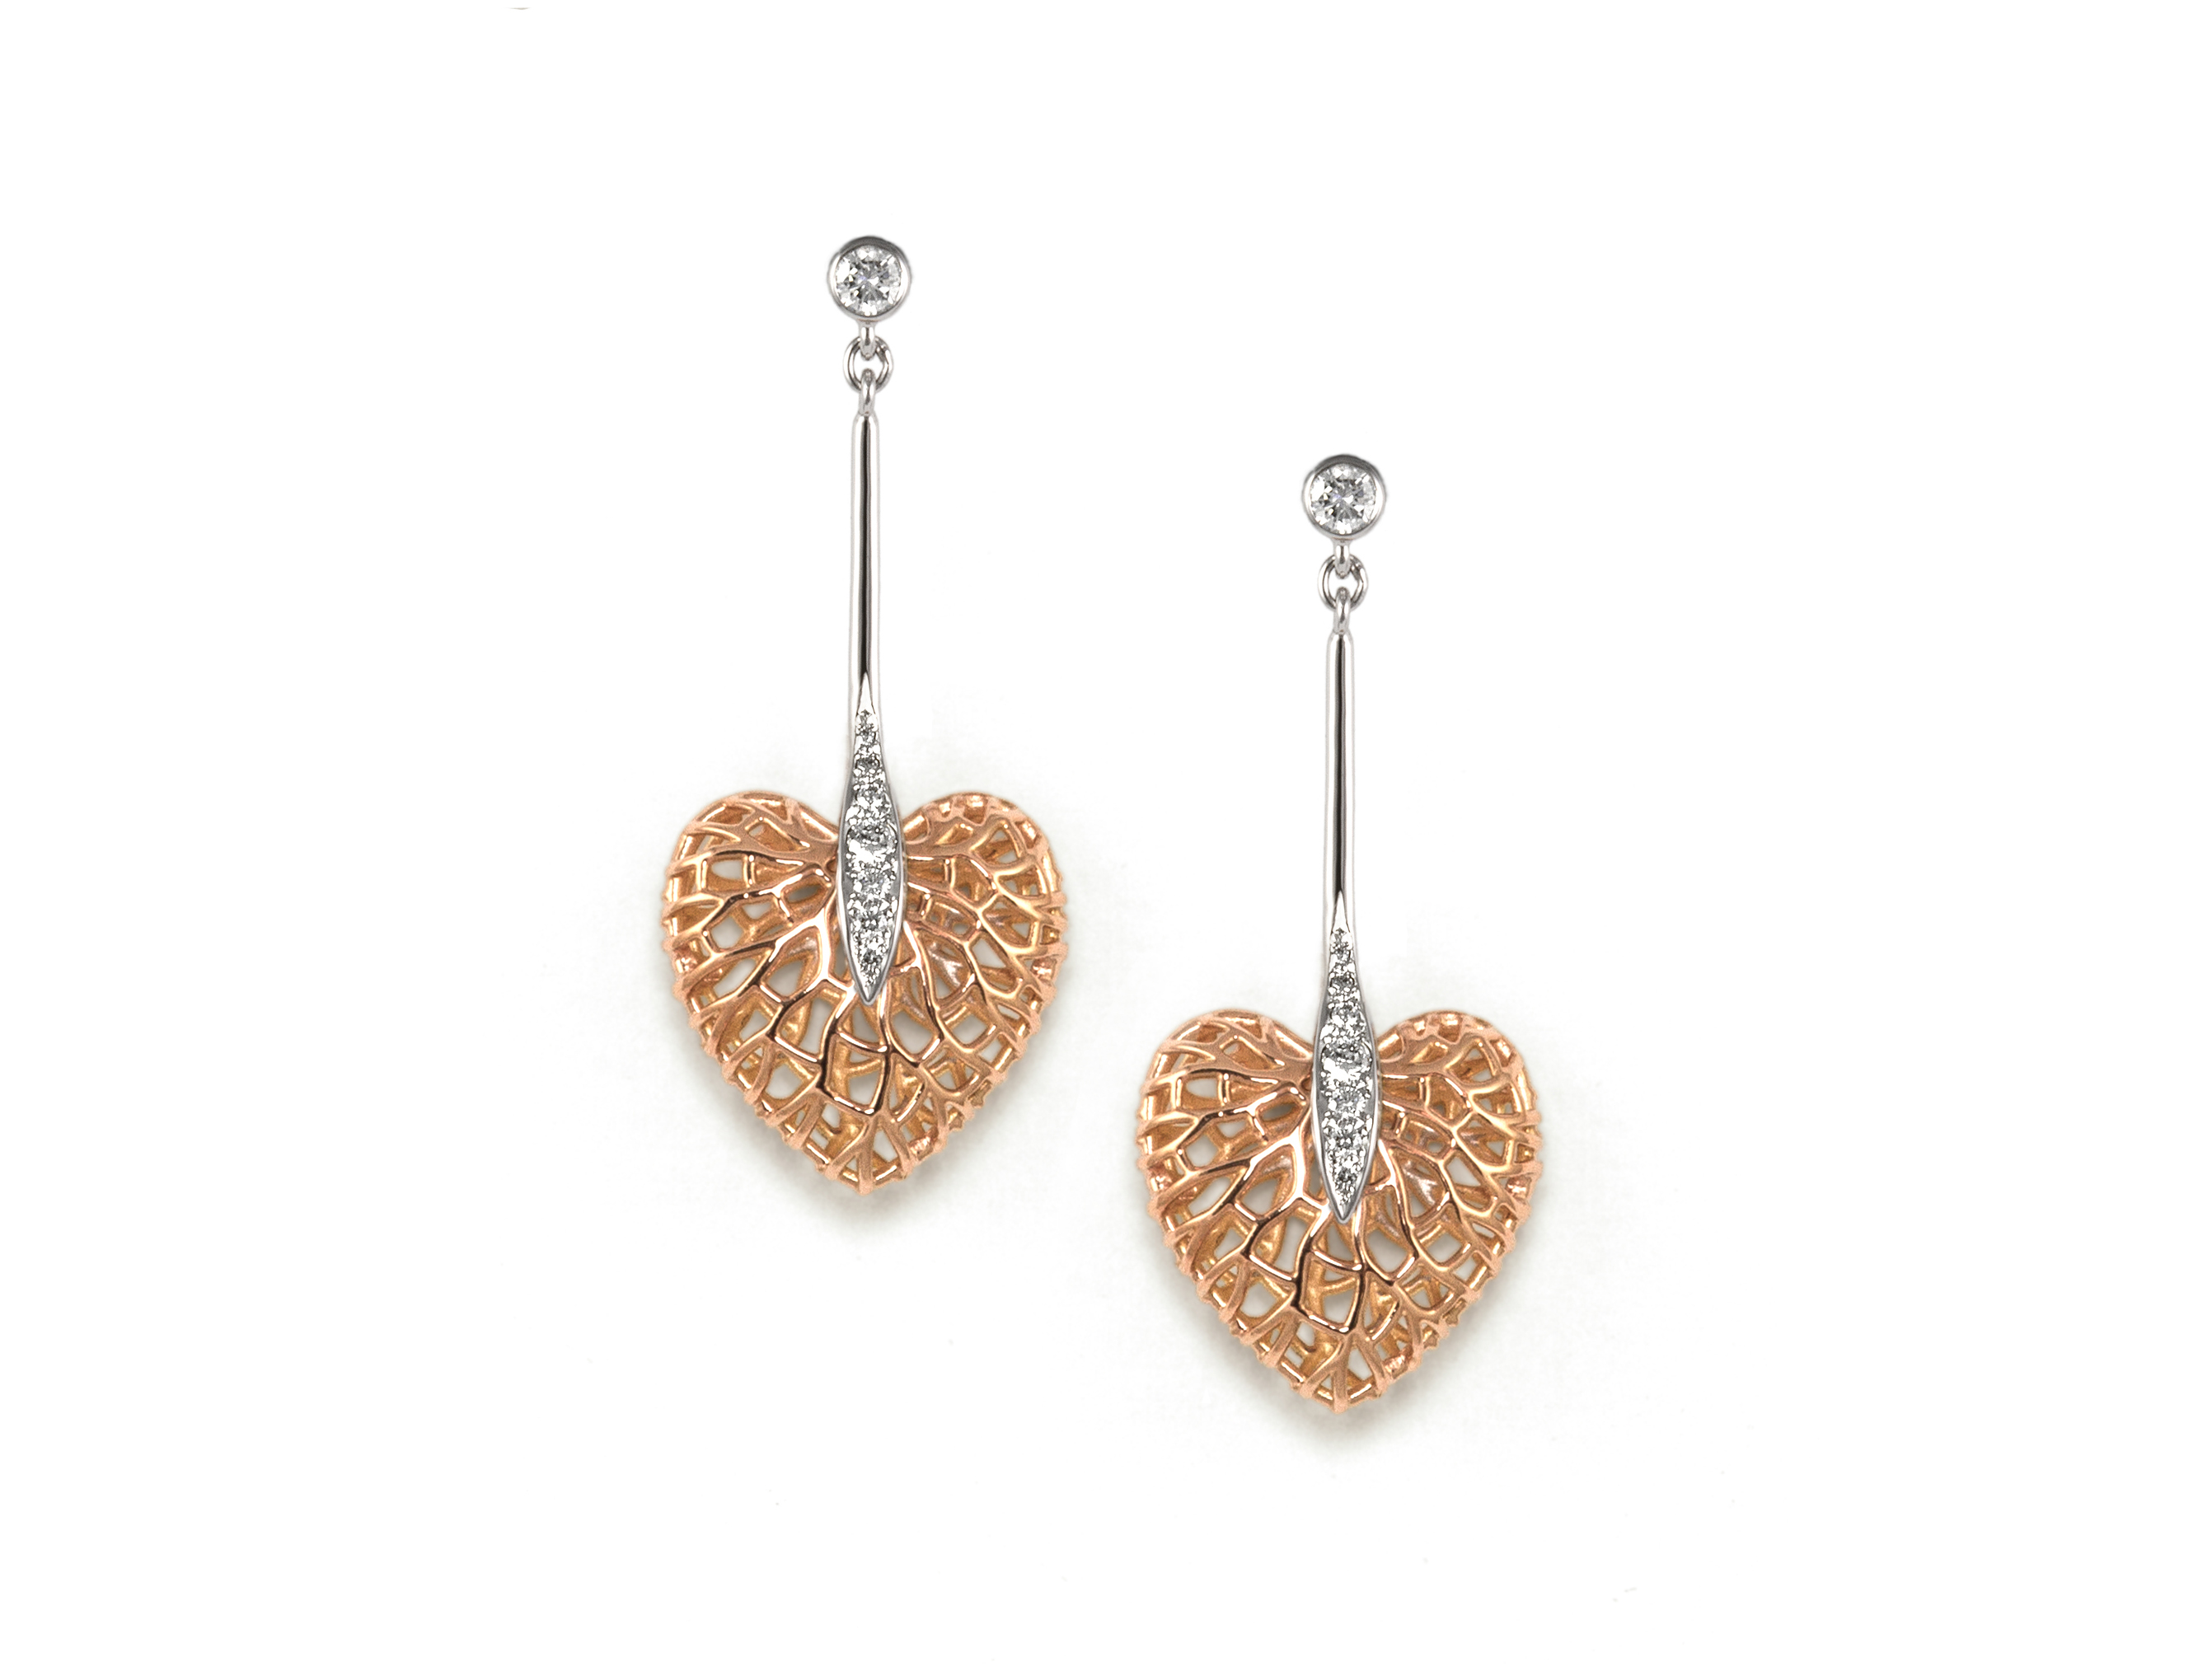 Eternal Heart earrings